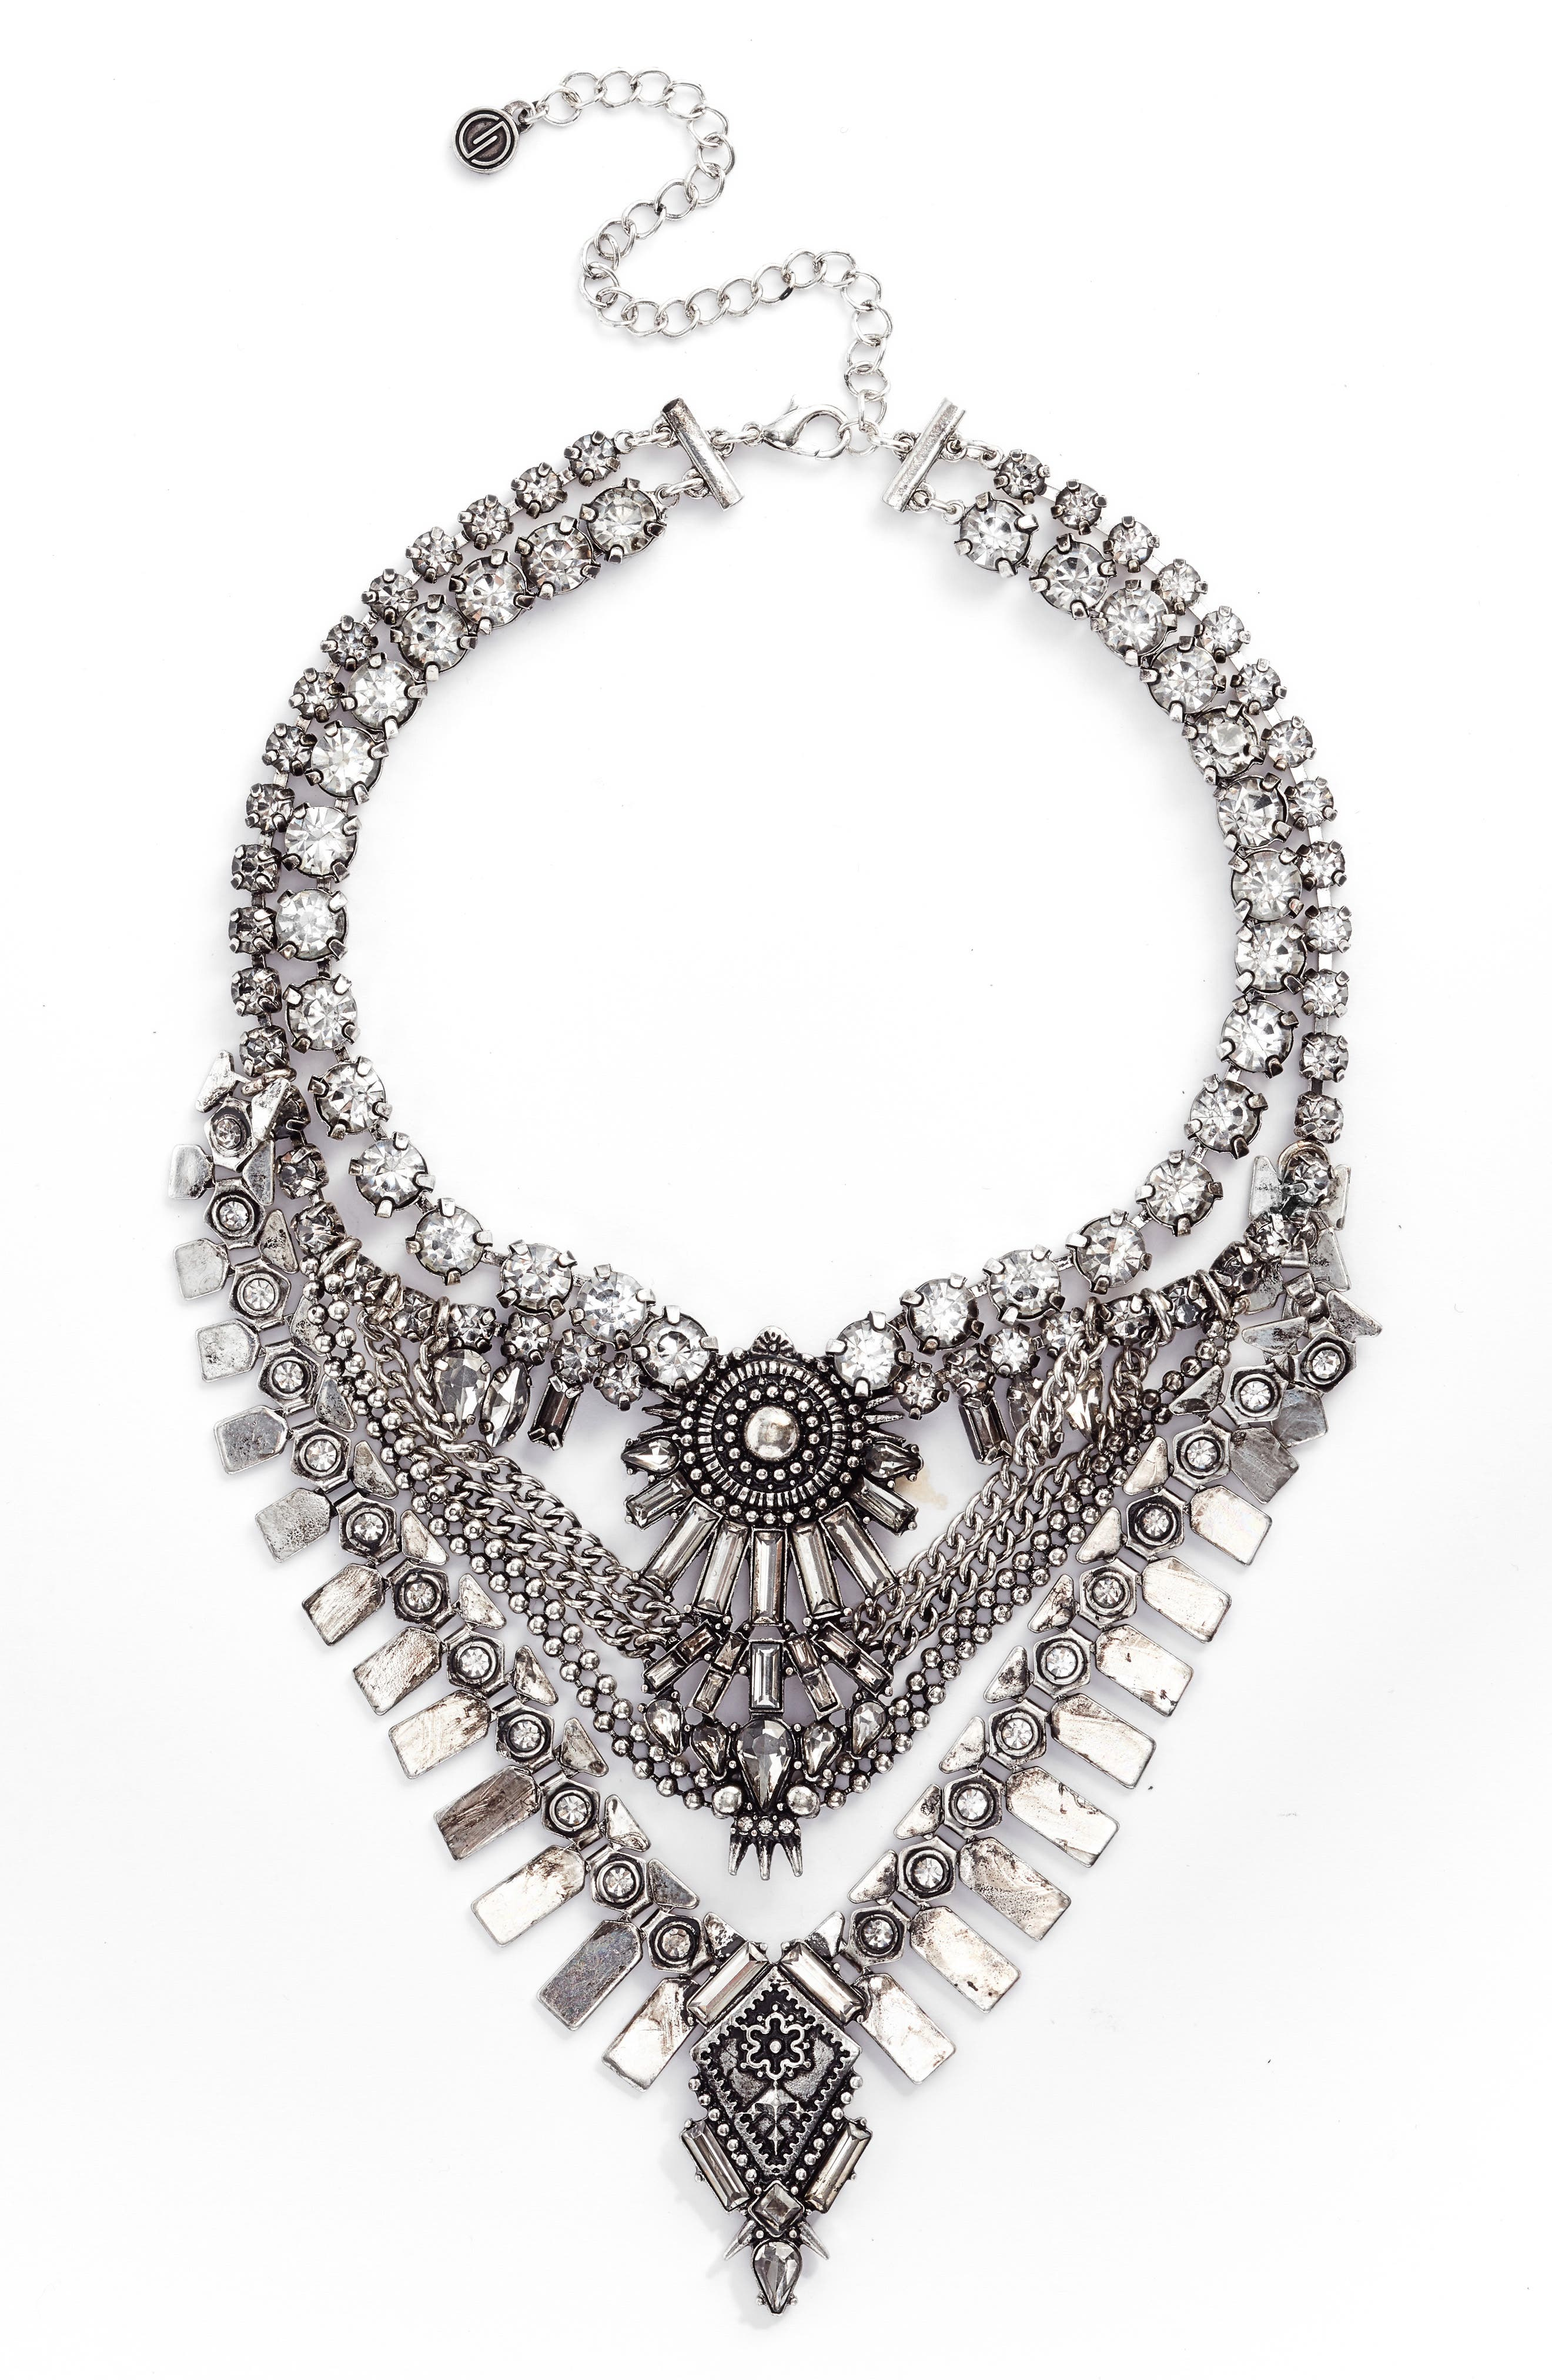 Curb Chain & Crystal Necklace,                             Main thumbnail 1, color,                             040